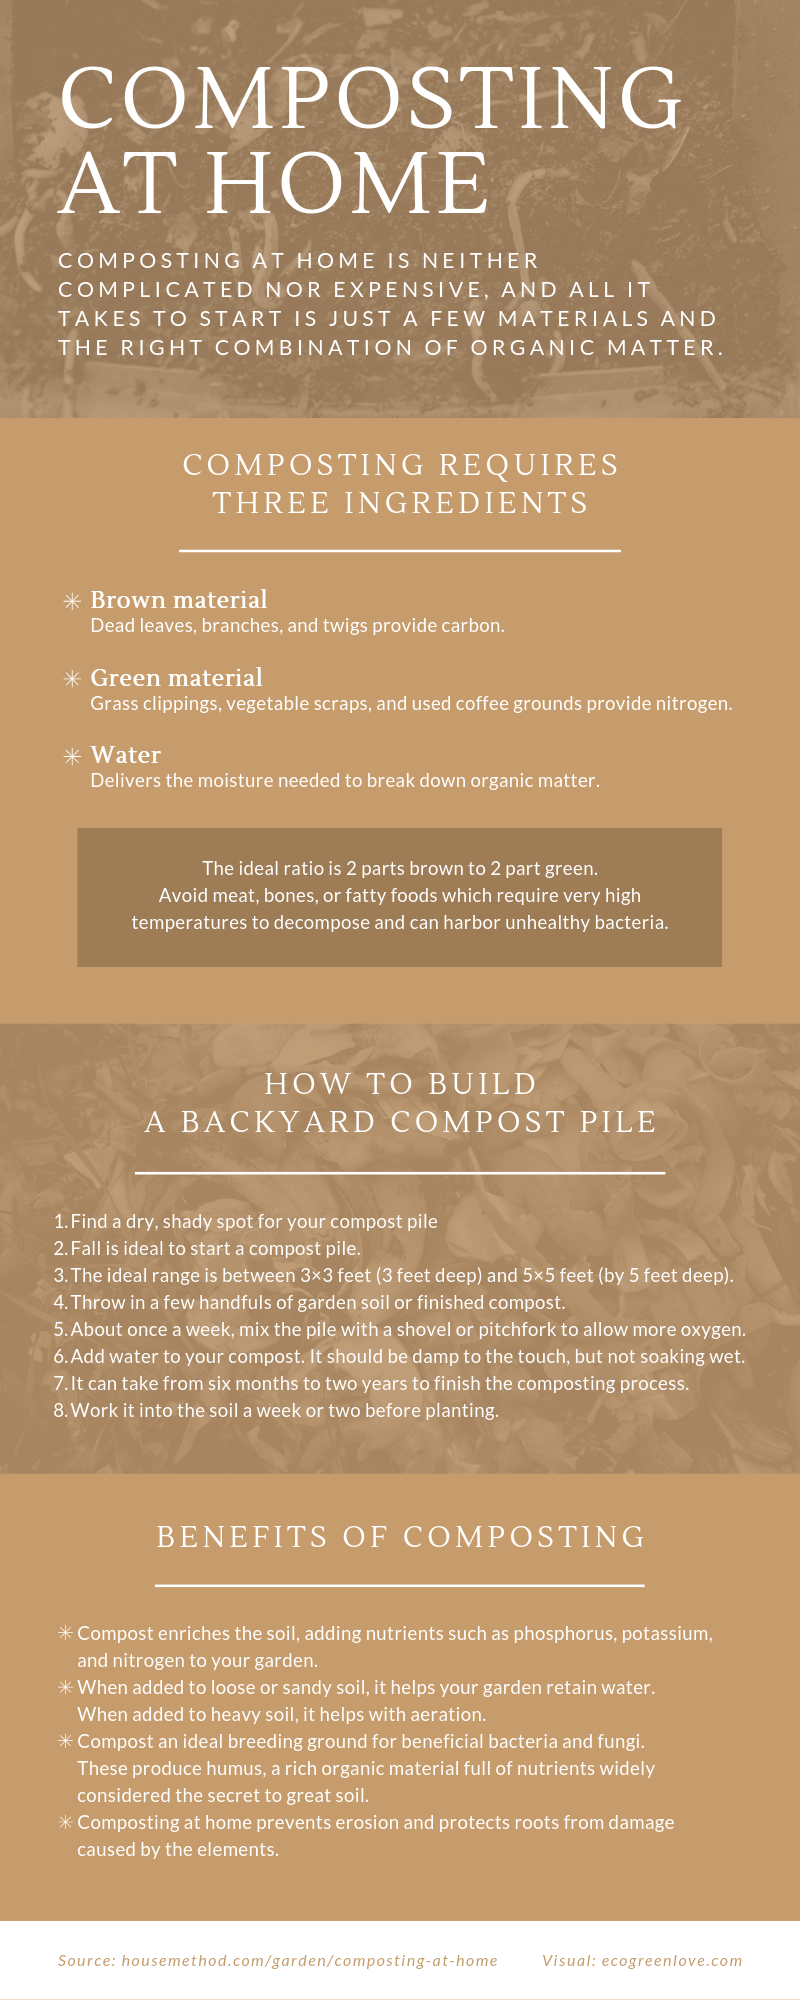 Composting at Home [Visual] | ecogreenlove